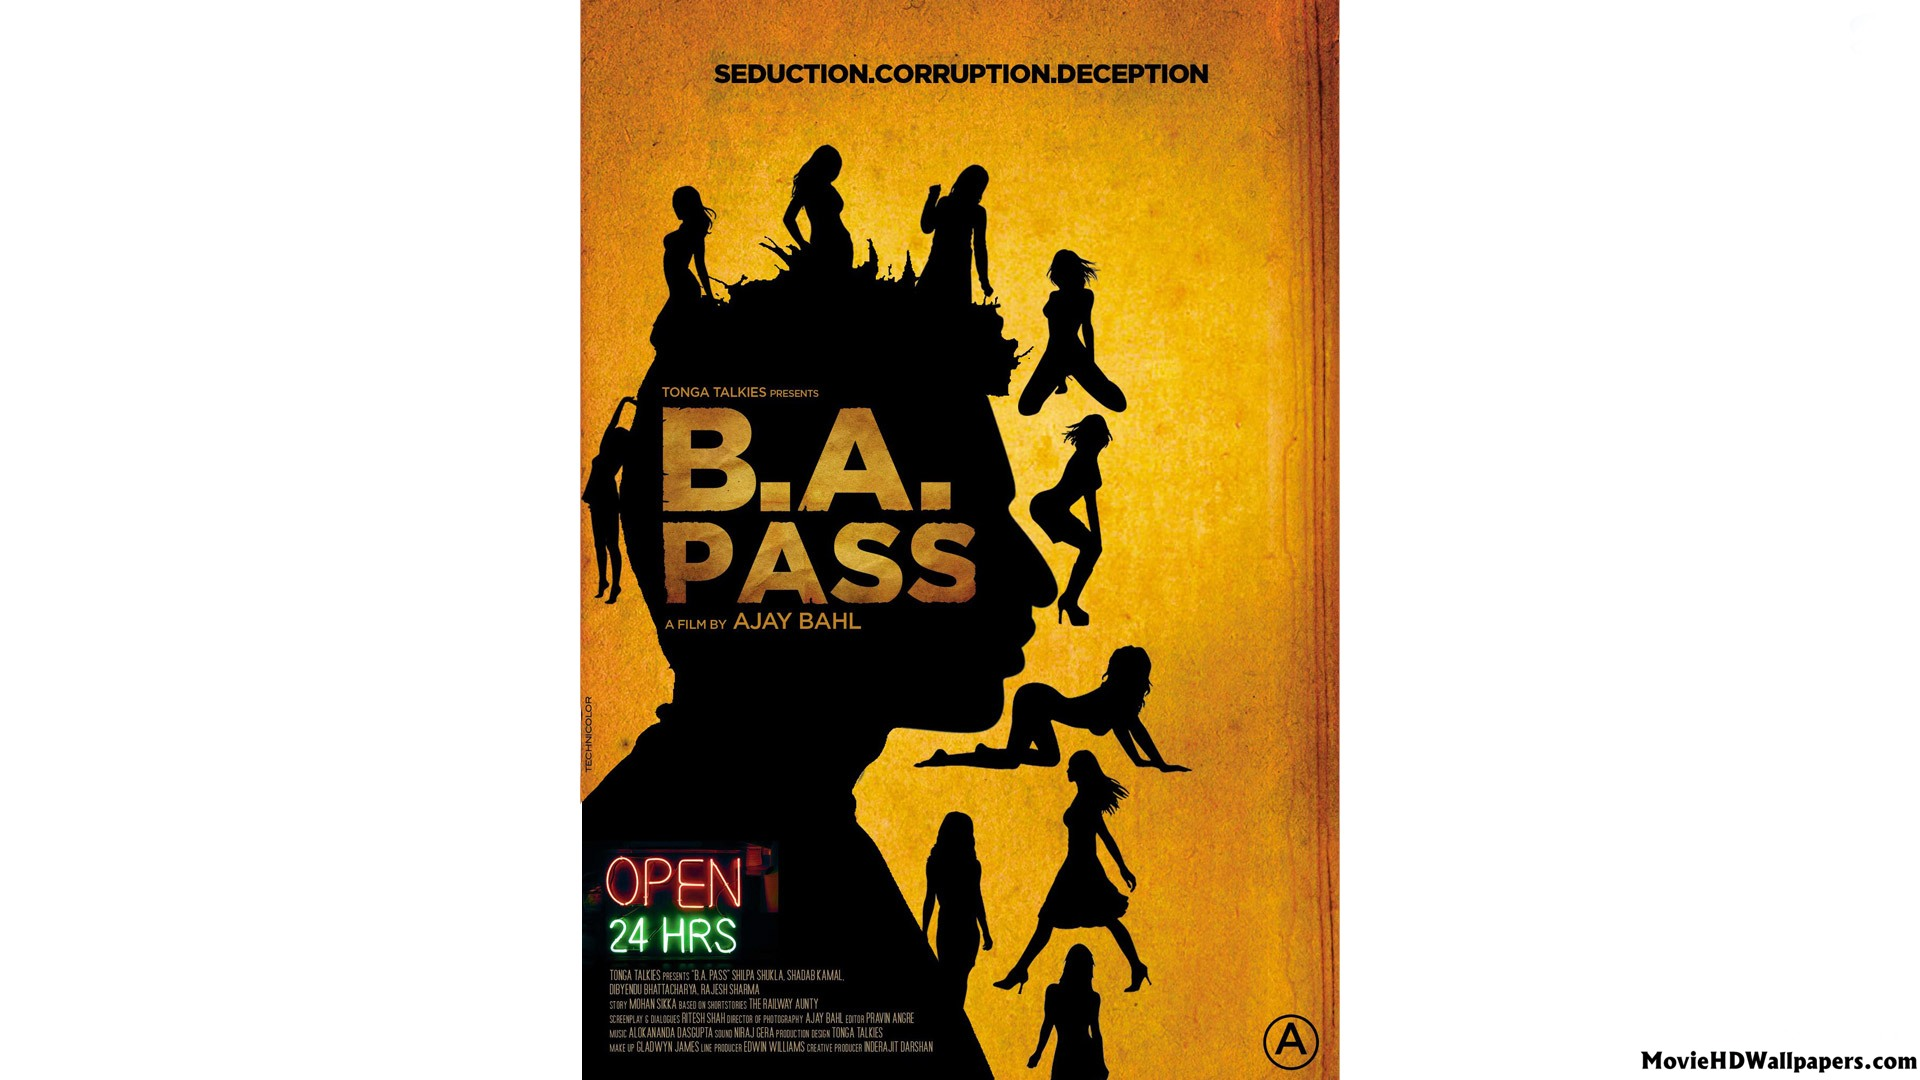 B.A. Pass Movie HD Wal...B A Pass